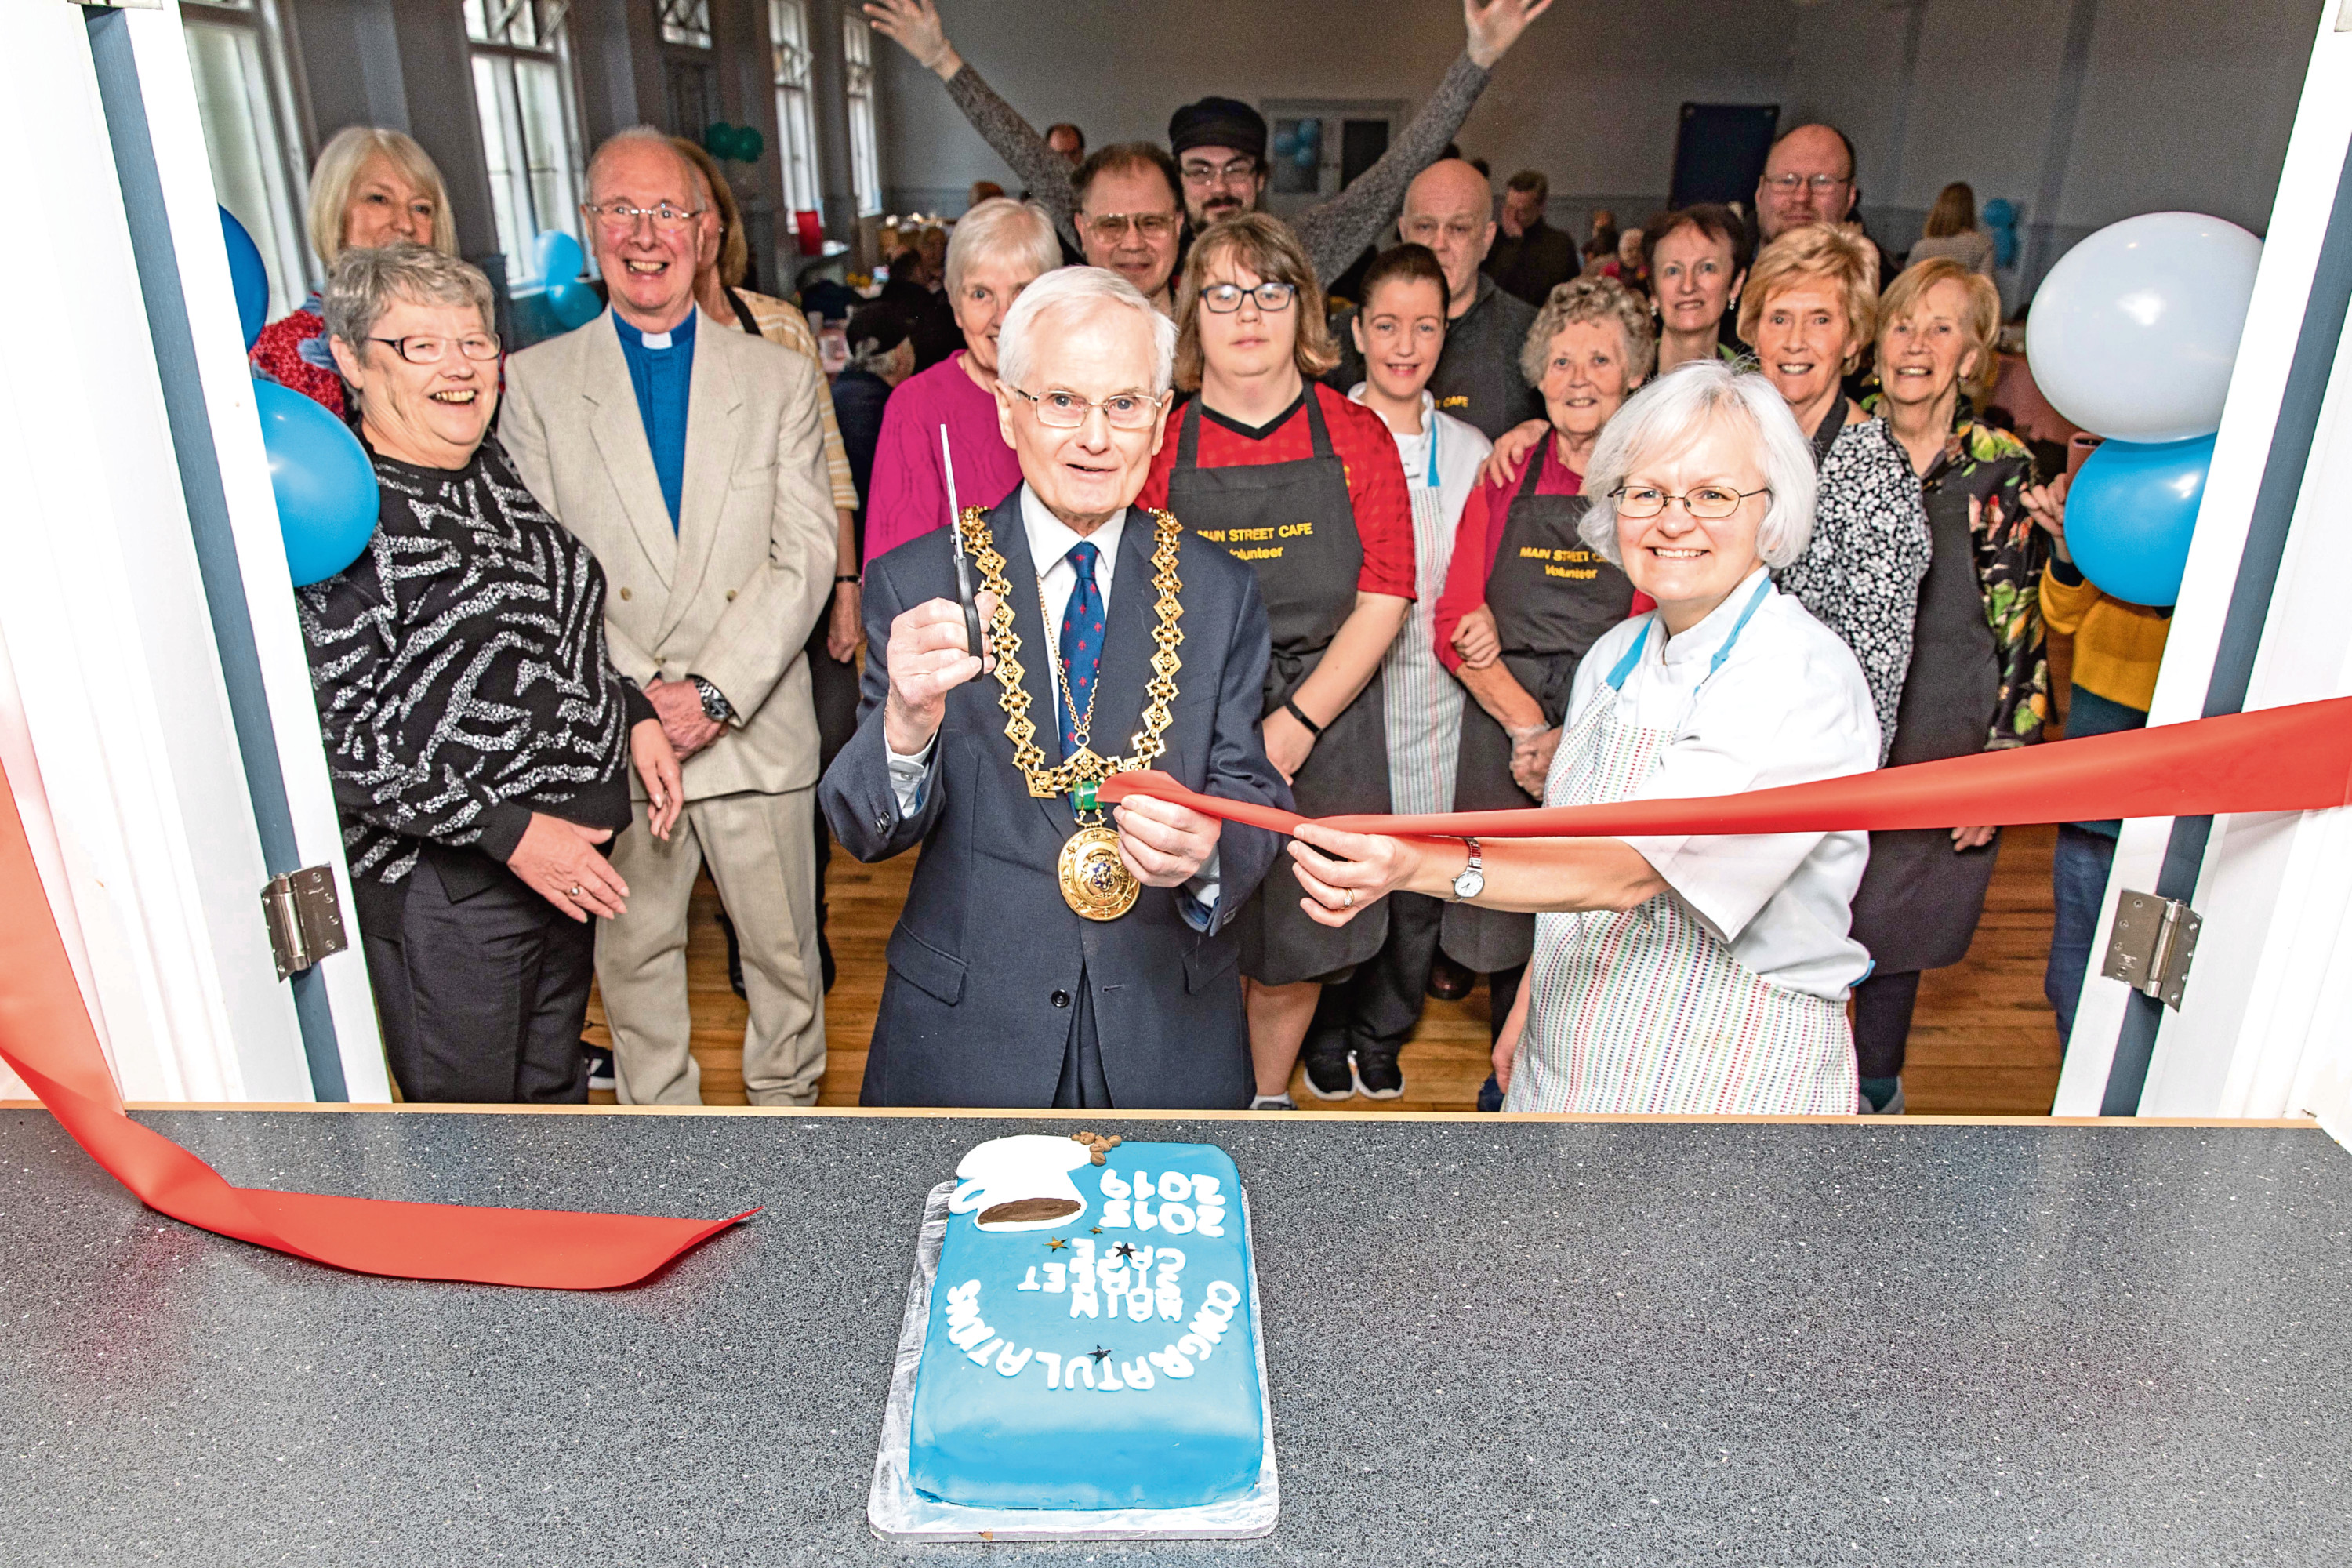 n THE lord provost cuts the ribbon helped by Sarah (right) as volunteers from the cafe look on.